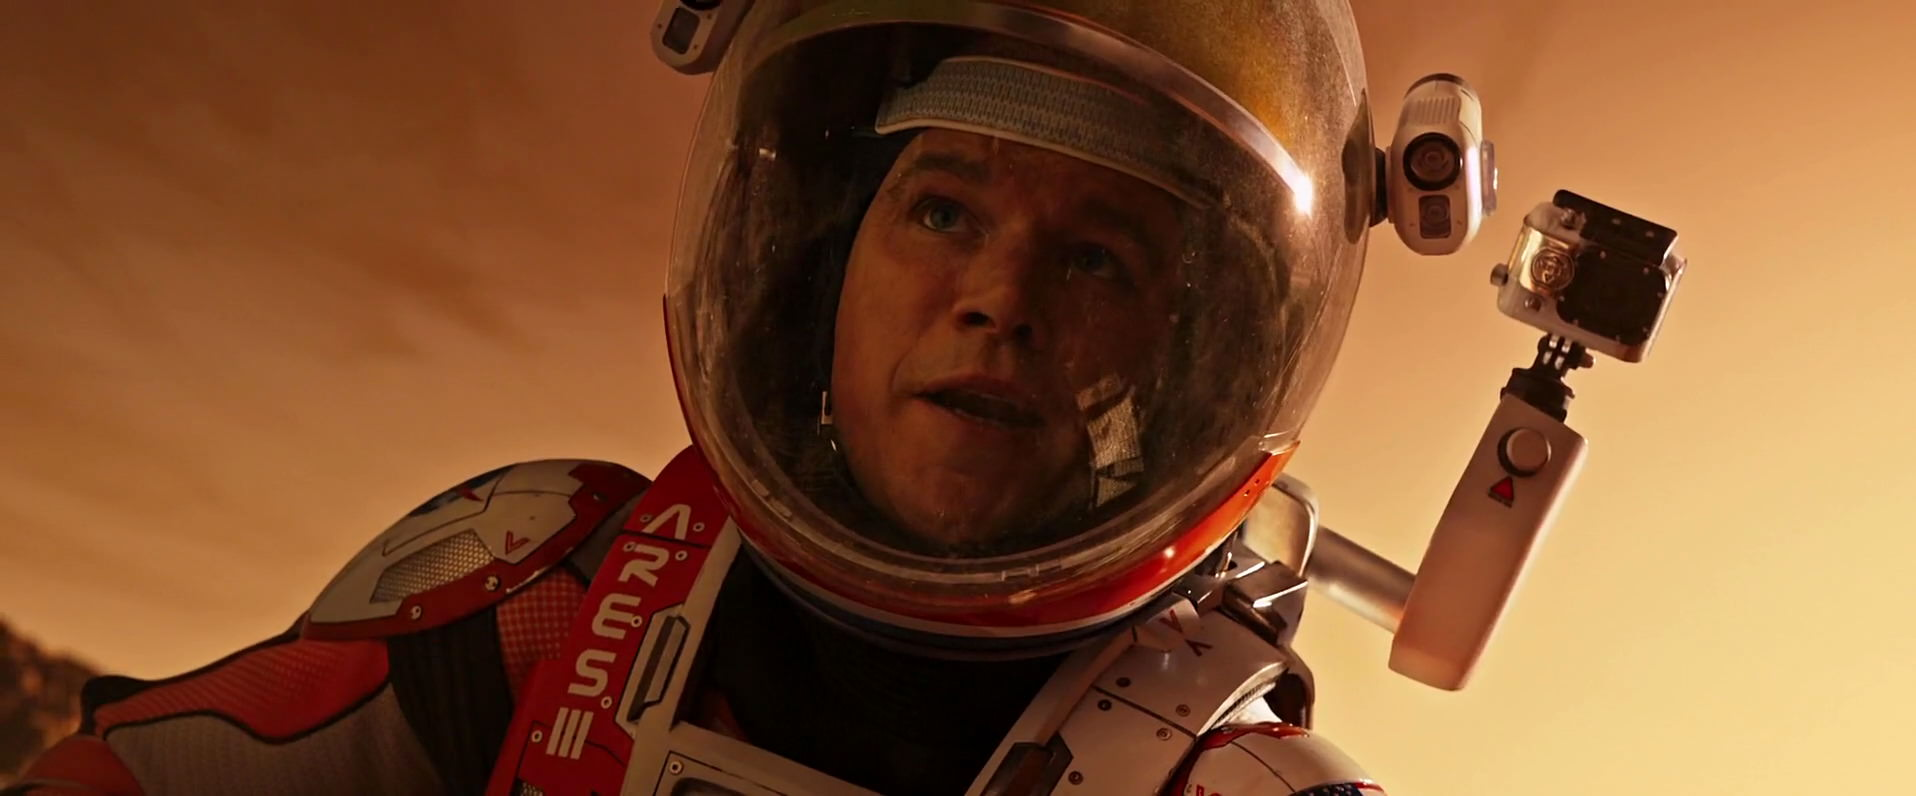 the-martian-movie-screencaps.com-109